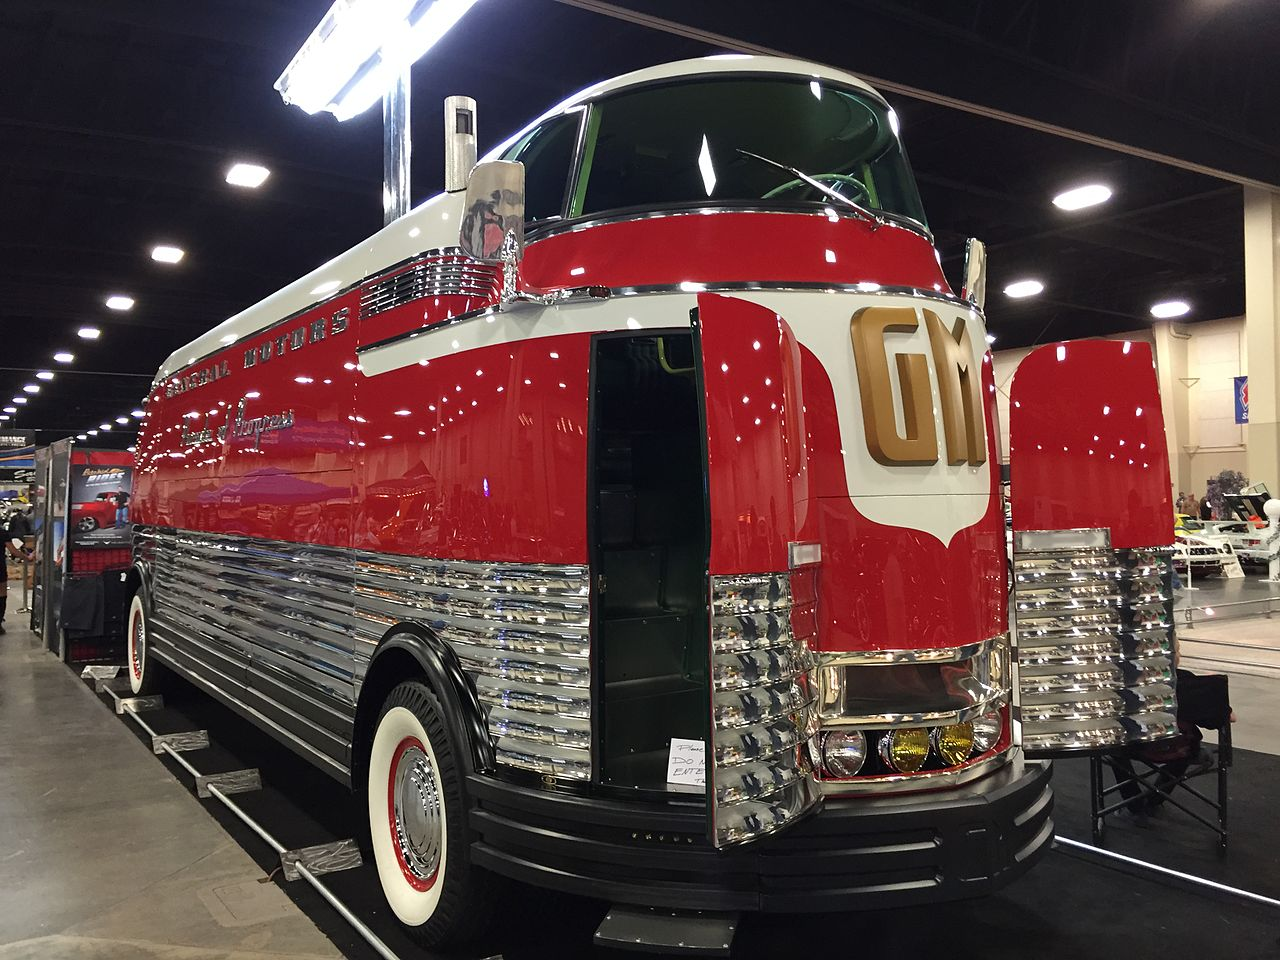 Originally the Futurliners were fully enclosed. This is Futurliner number 3 which is now on display in Salt Lake City, Utah. (Picture courtesy Wikipedia).